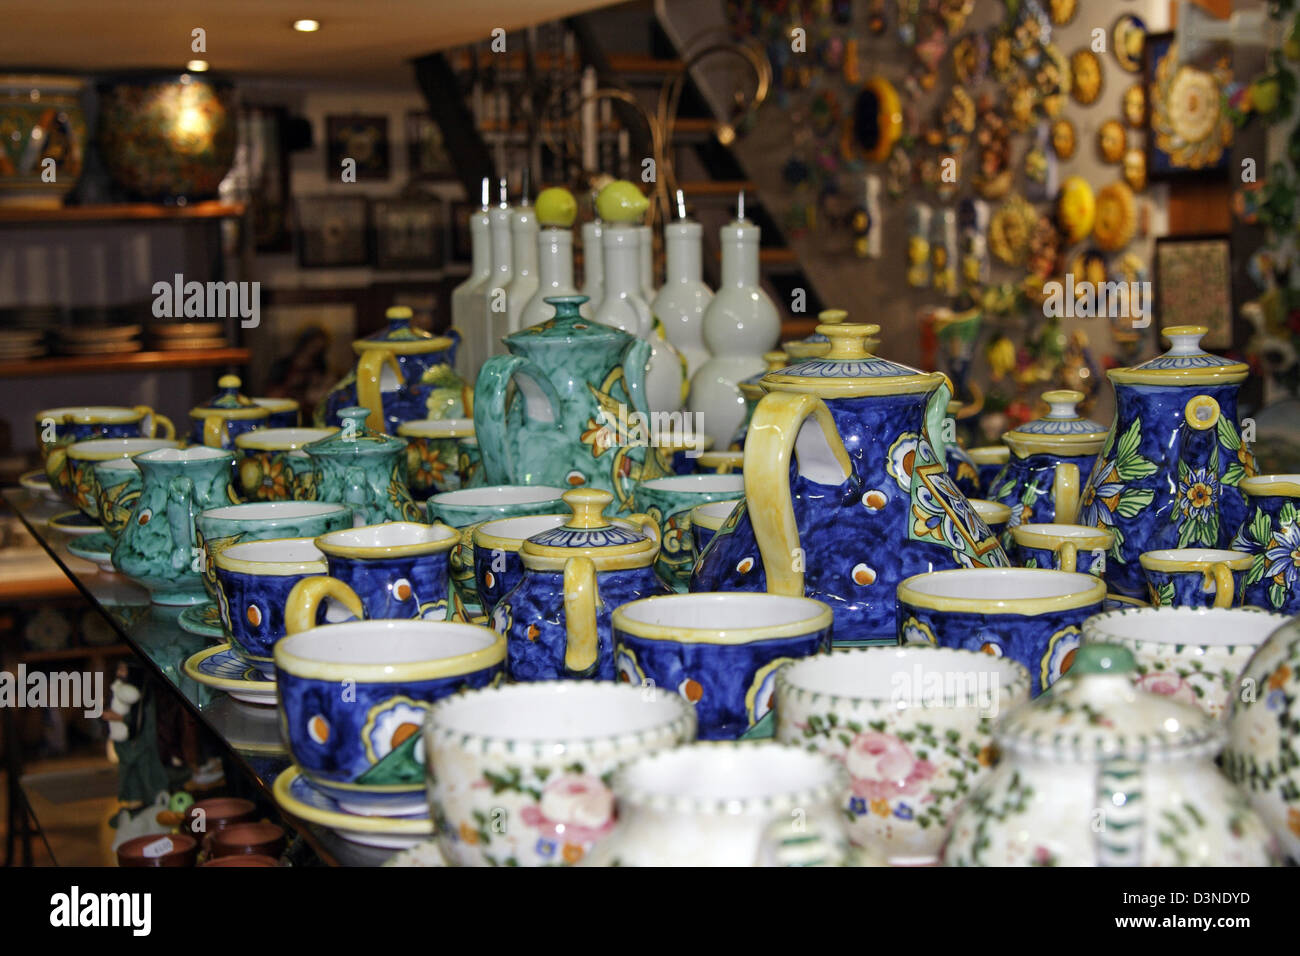 (dpa file) - The picture shows colourful ceramic tableware  typical for the region on sale at a local arts and craft Stock Photo